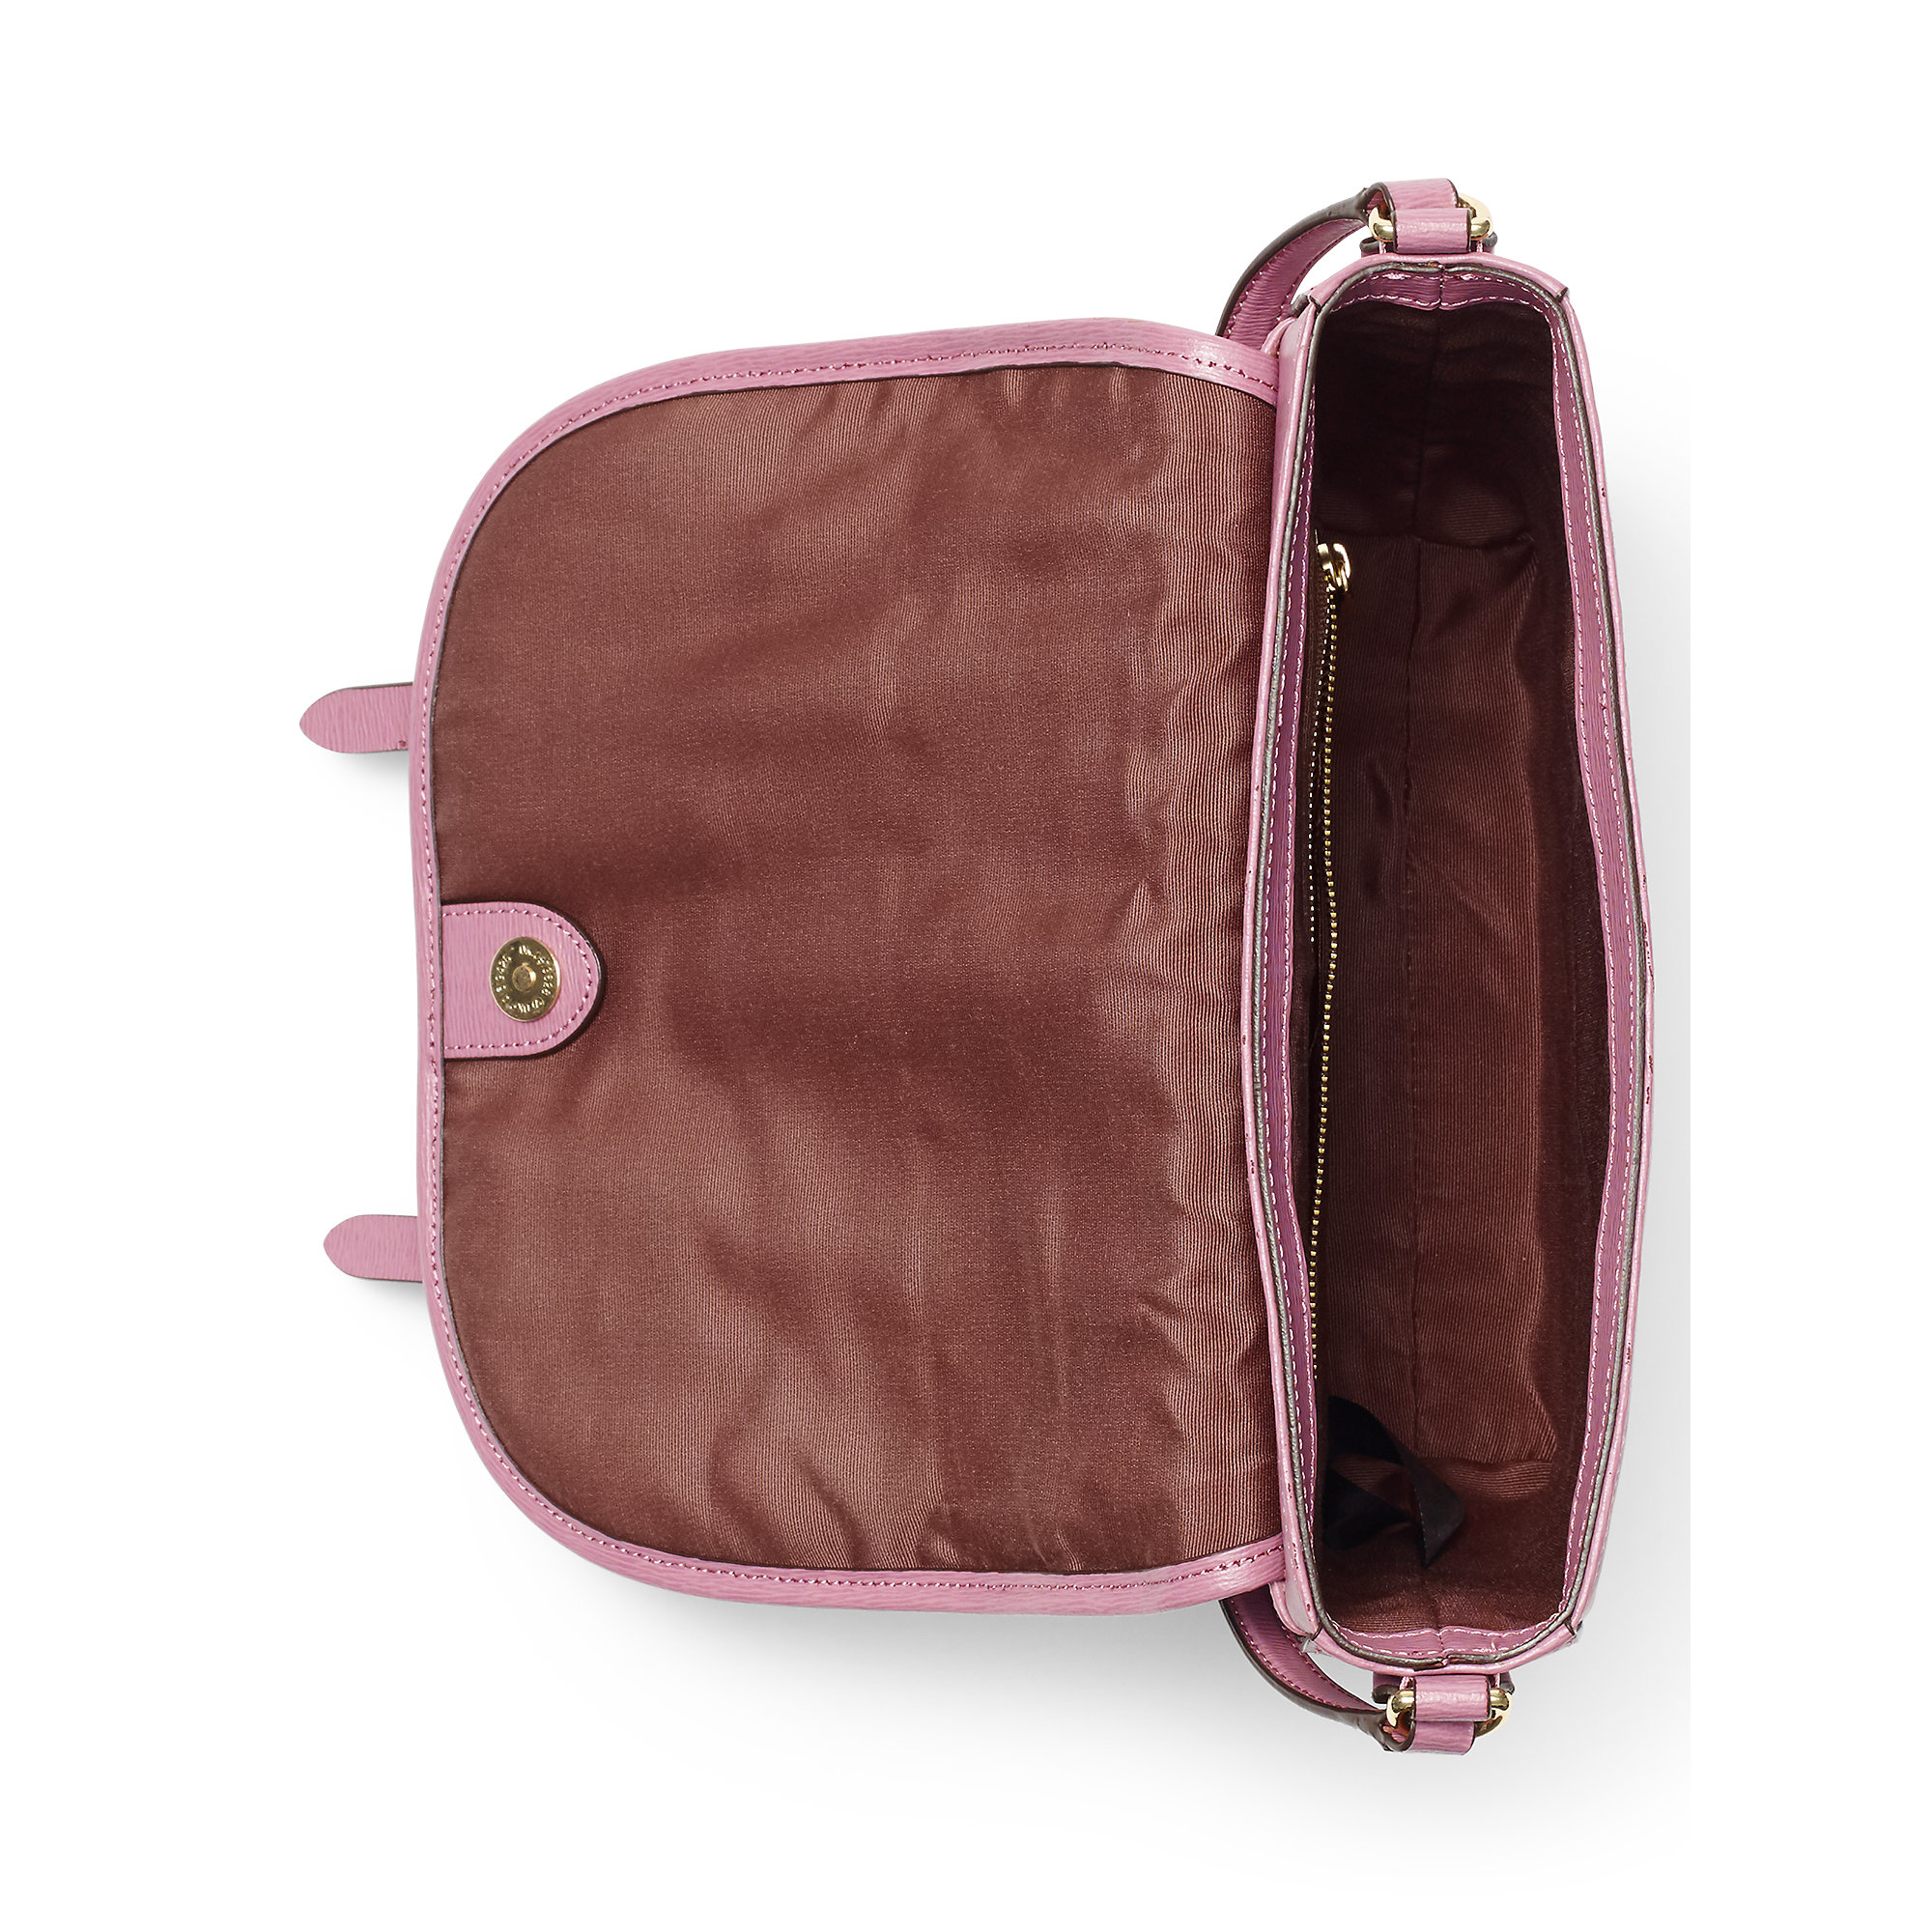 Lyst - Ralph Lauren Tate Leather Messenger Bag in Pink 51ae4f0062